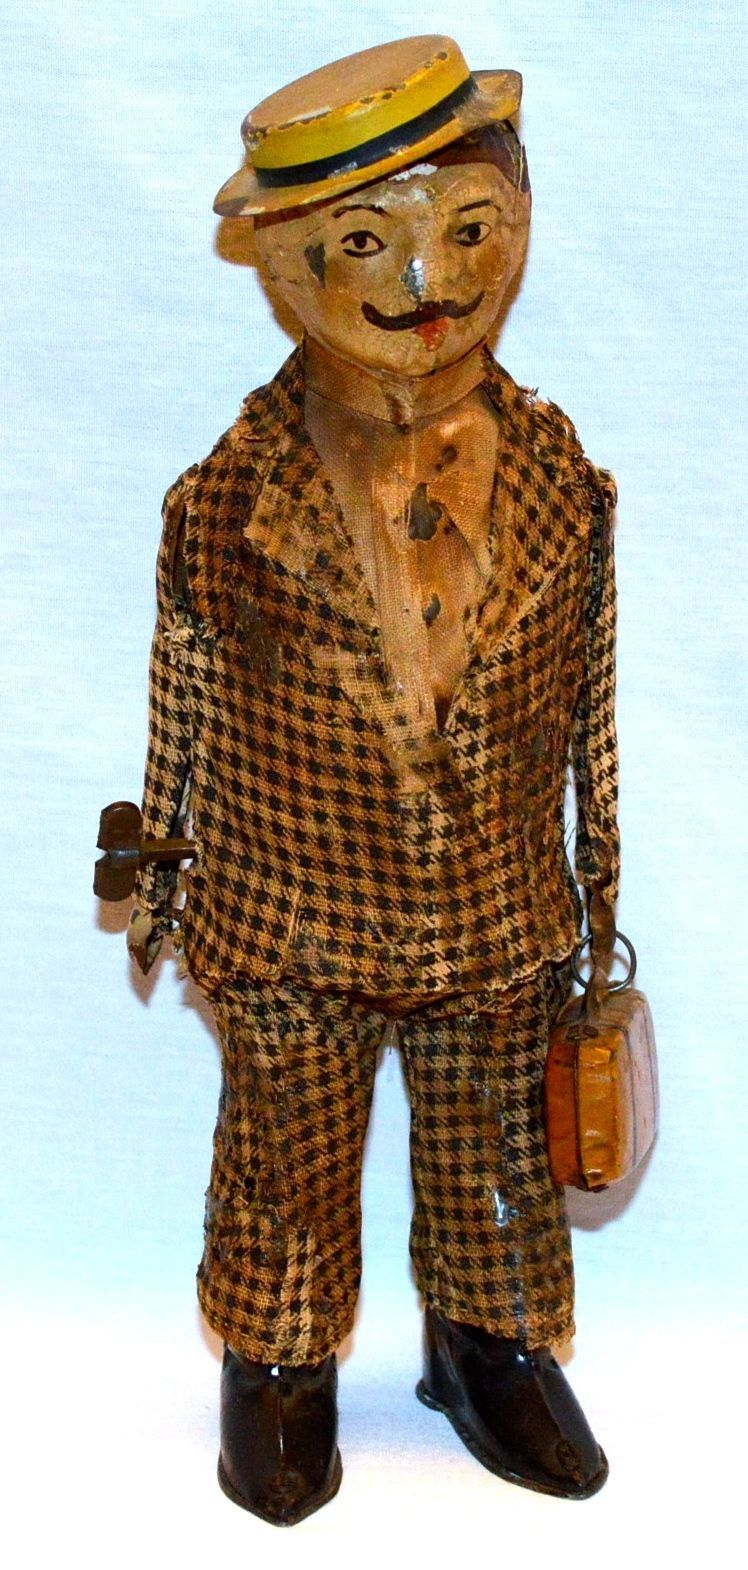 Gunthermann Man with Suitcase. Wind up toy from 1910/ebay